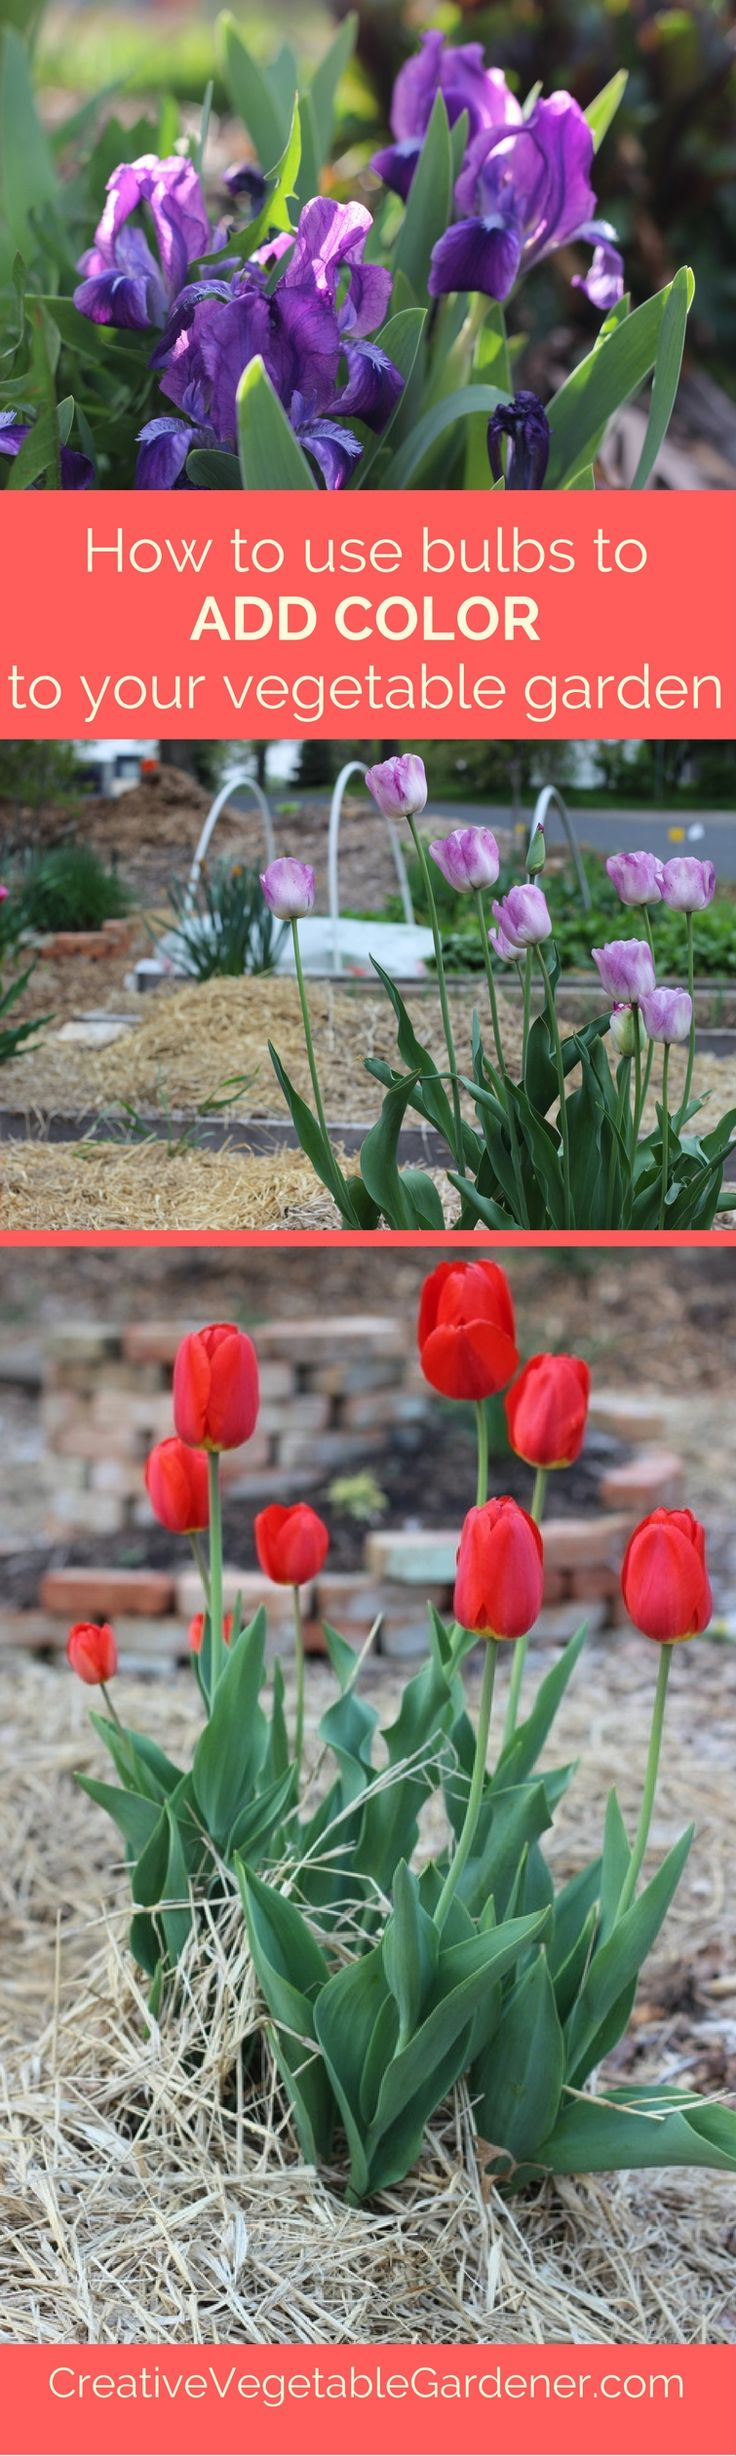 add flowers this fall for a colorful spring garden